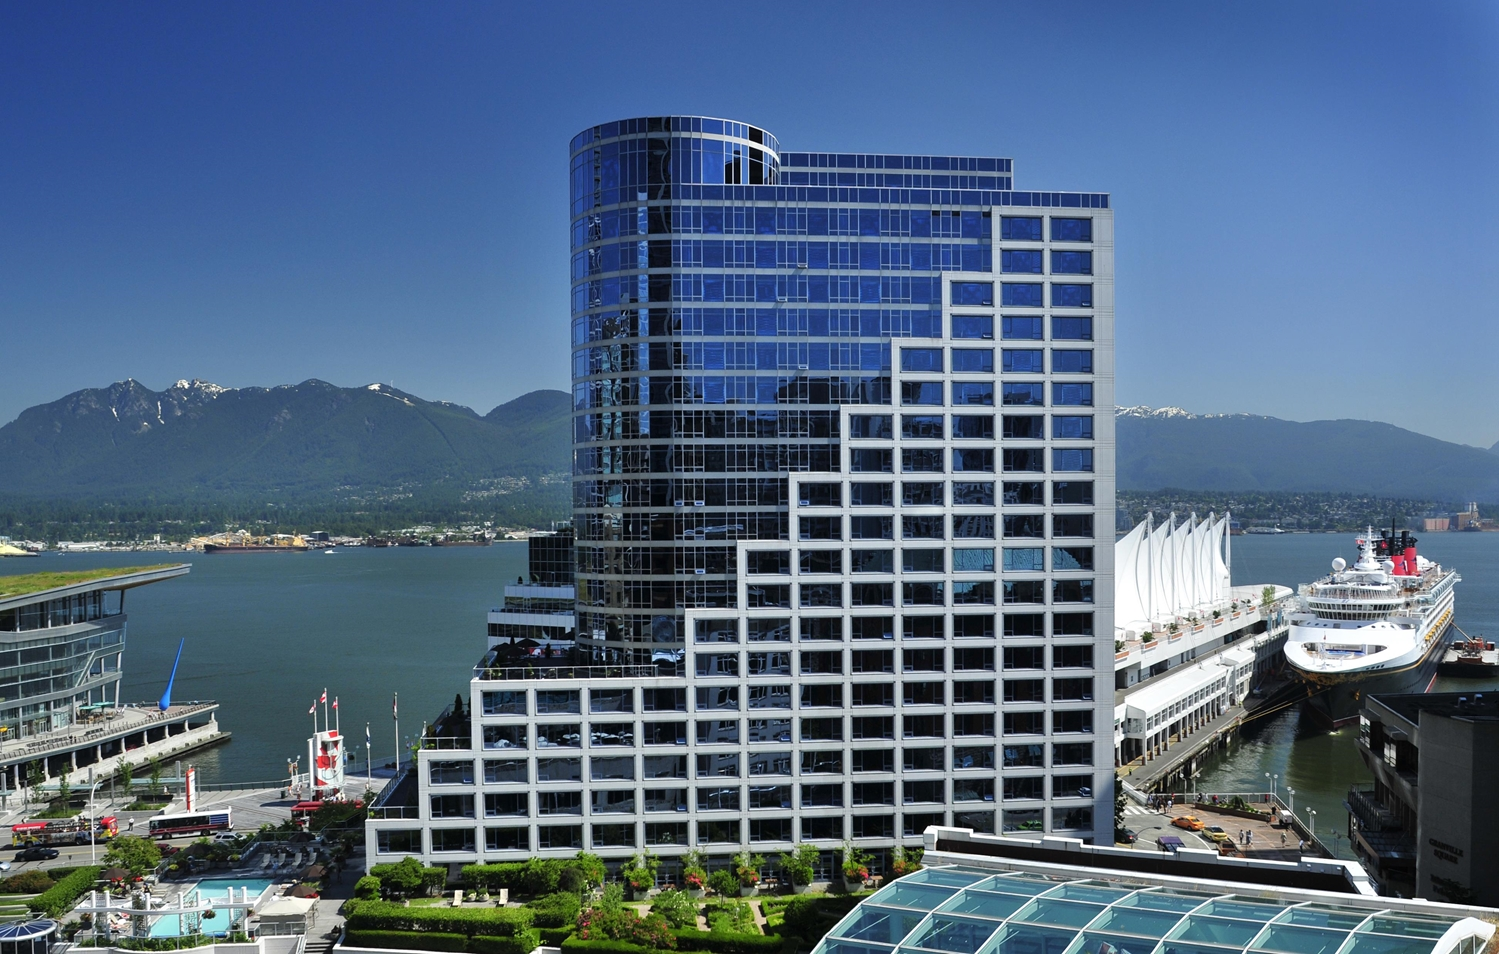 Fairmont Waterfront Hotel Vancouver